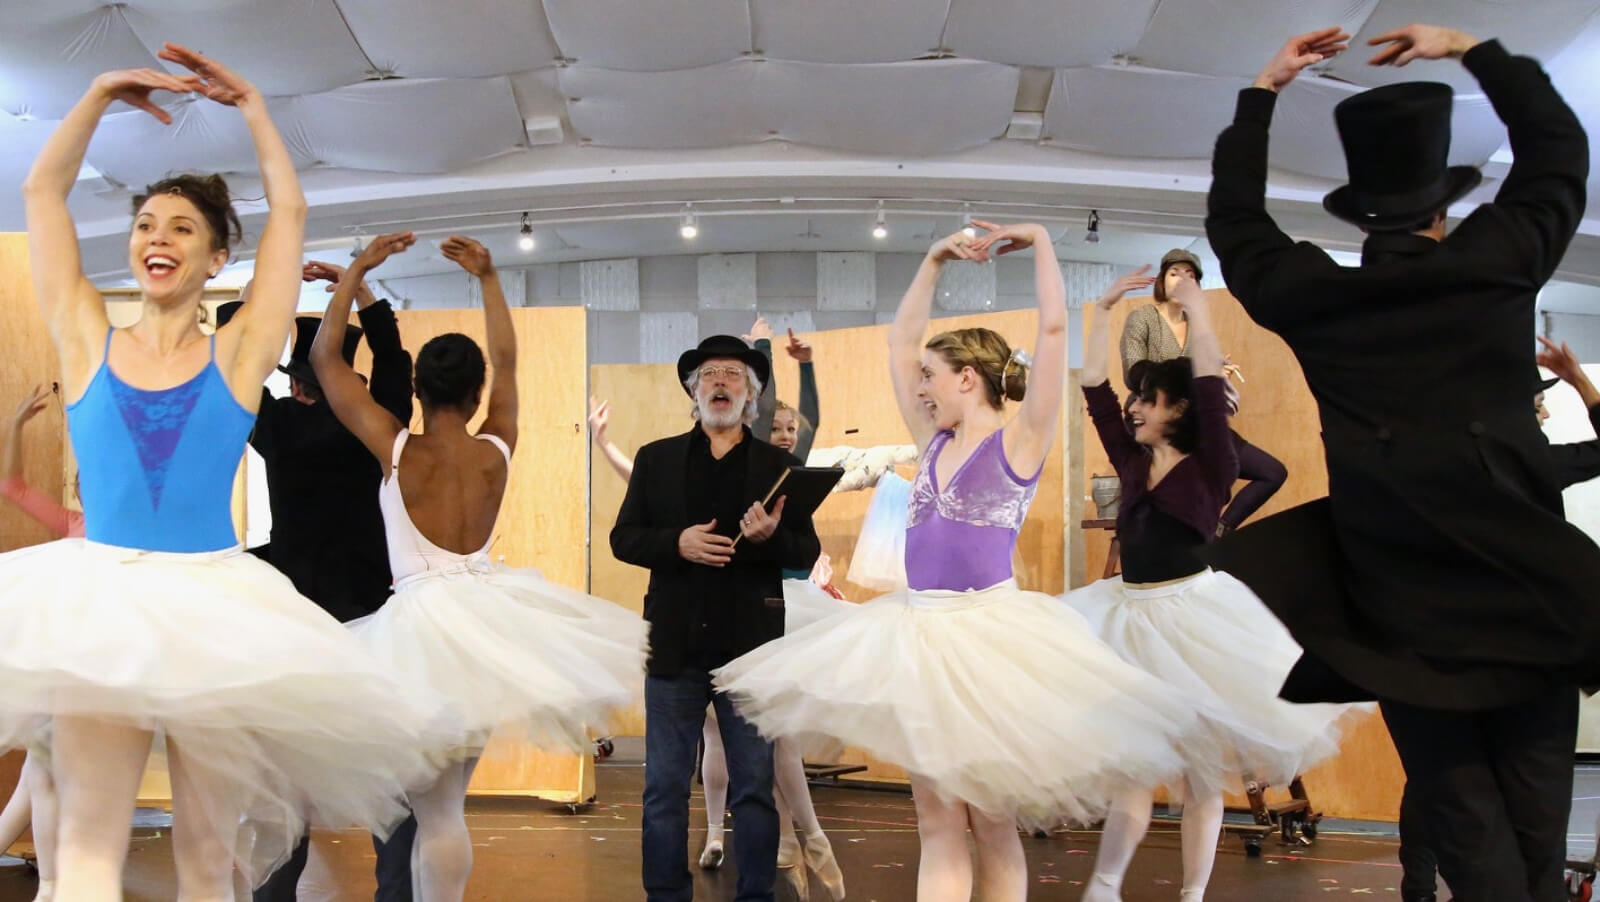 The cast in their beautiful and colorful leotard tops and white tutus, with male dancers in a black hat and a suit, during rehearsals, having fun while being serious with training at the same time. Degas stands in the middle.